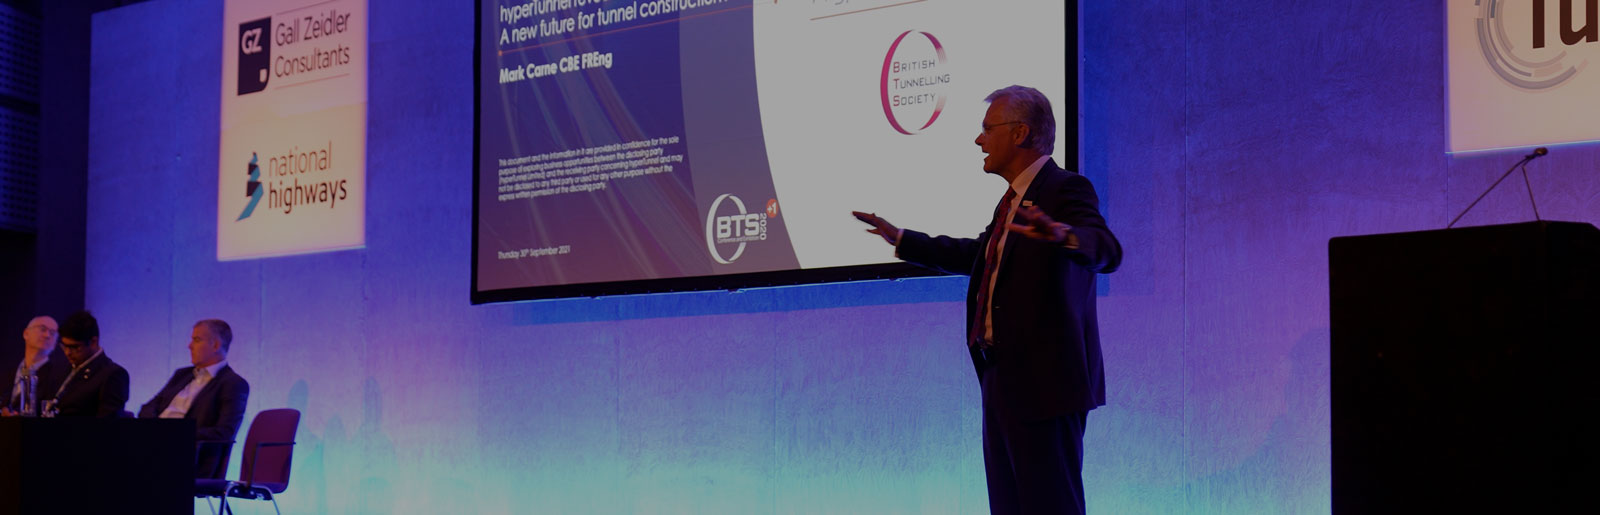 Chairman Mark Carne reveals hyperTunnel's methodology at the BTS conference